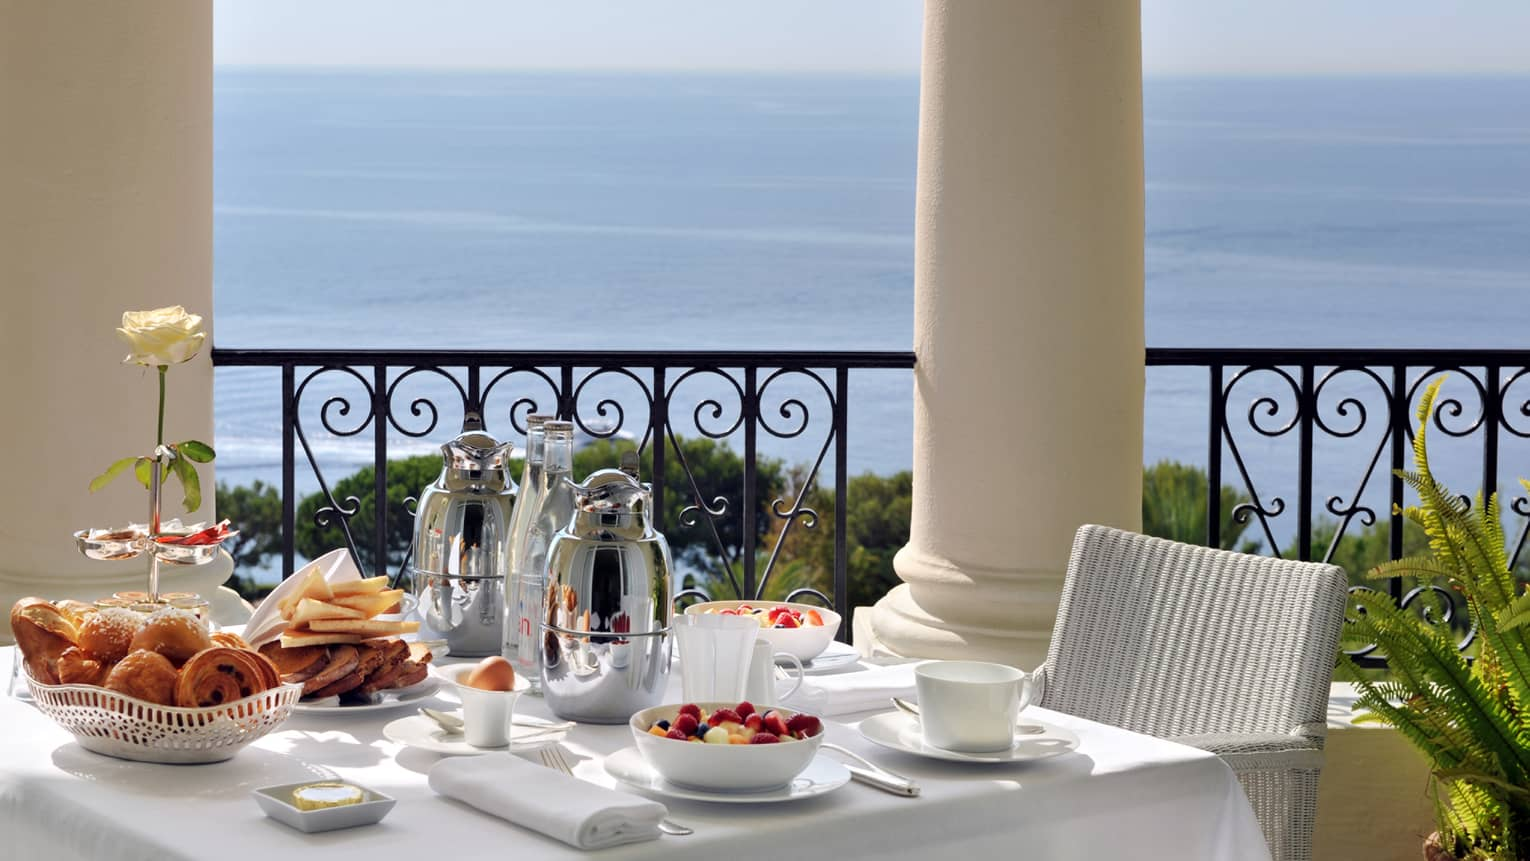 Brunch is arranged on a square table with white table cloth, white whicker chair on balcony overlooking the sea